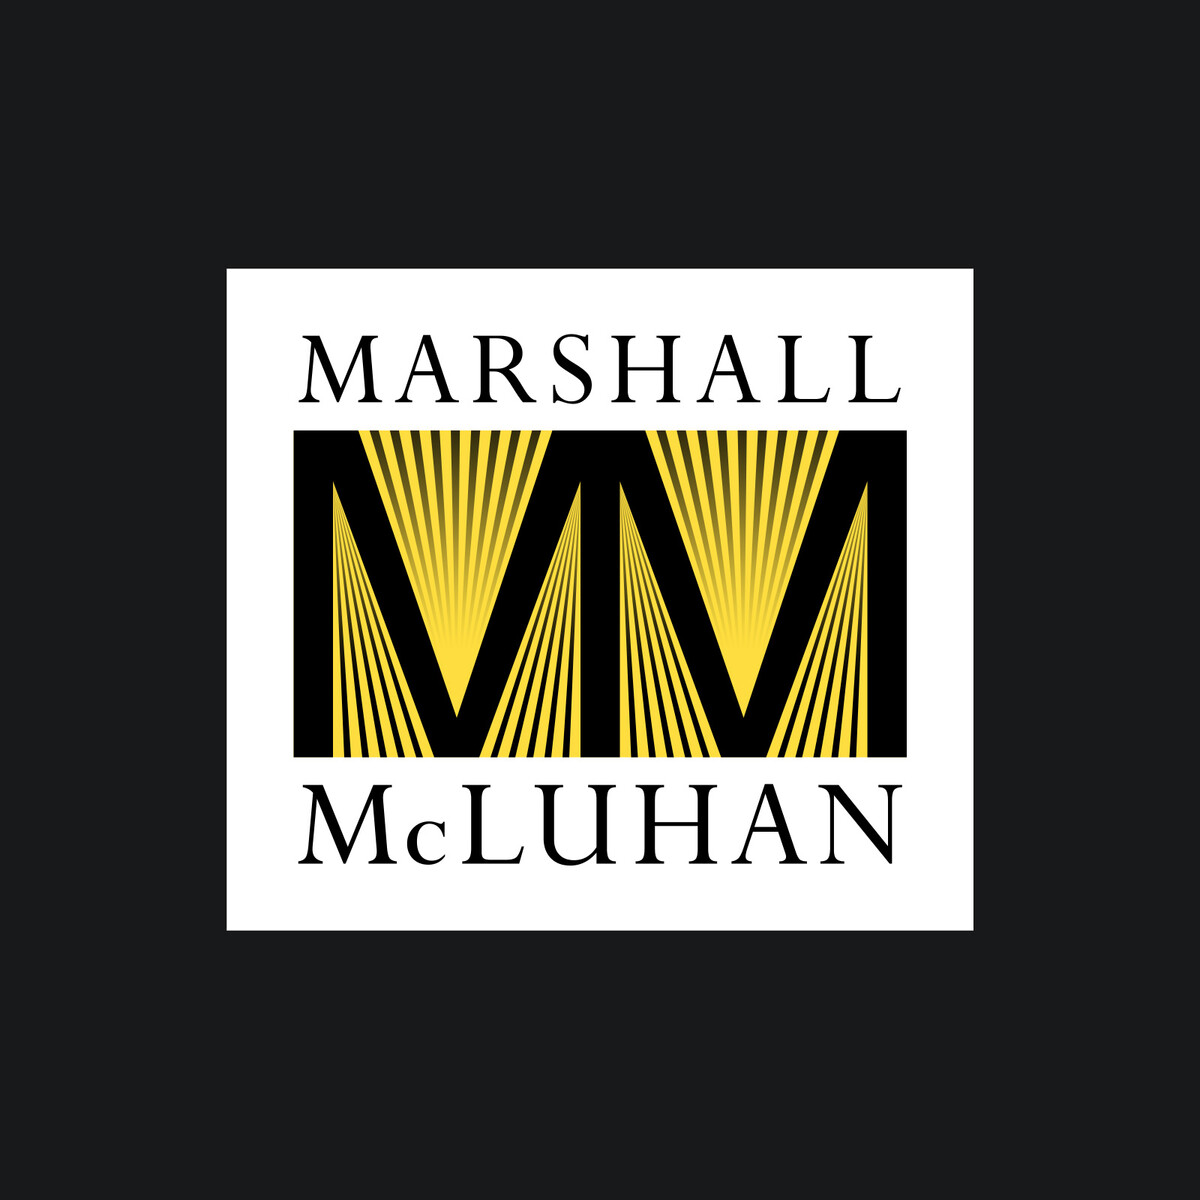 The Estate of Marshall McLuhan